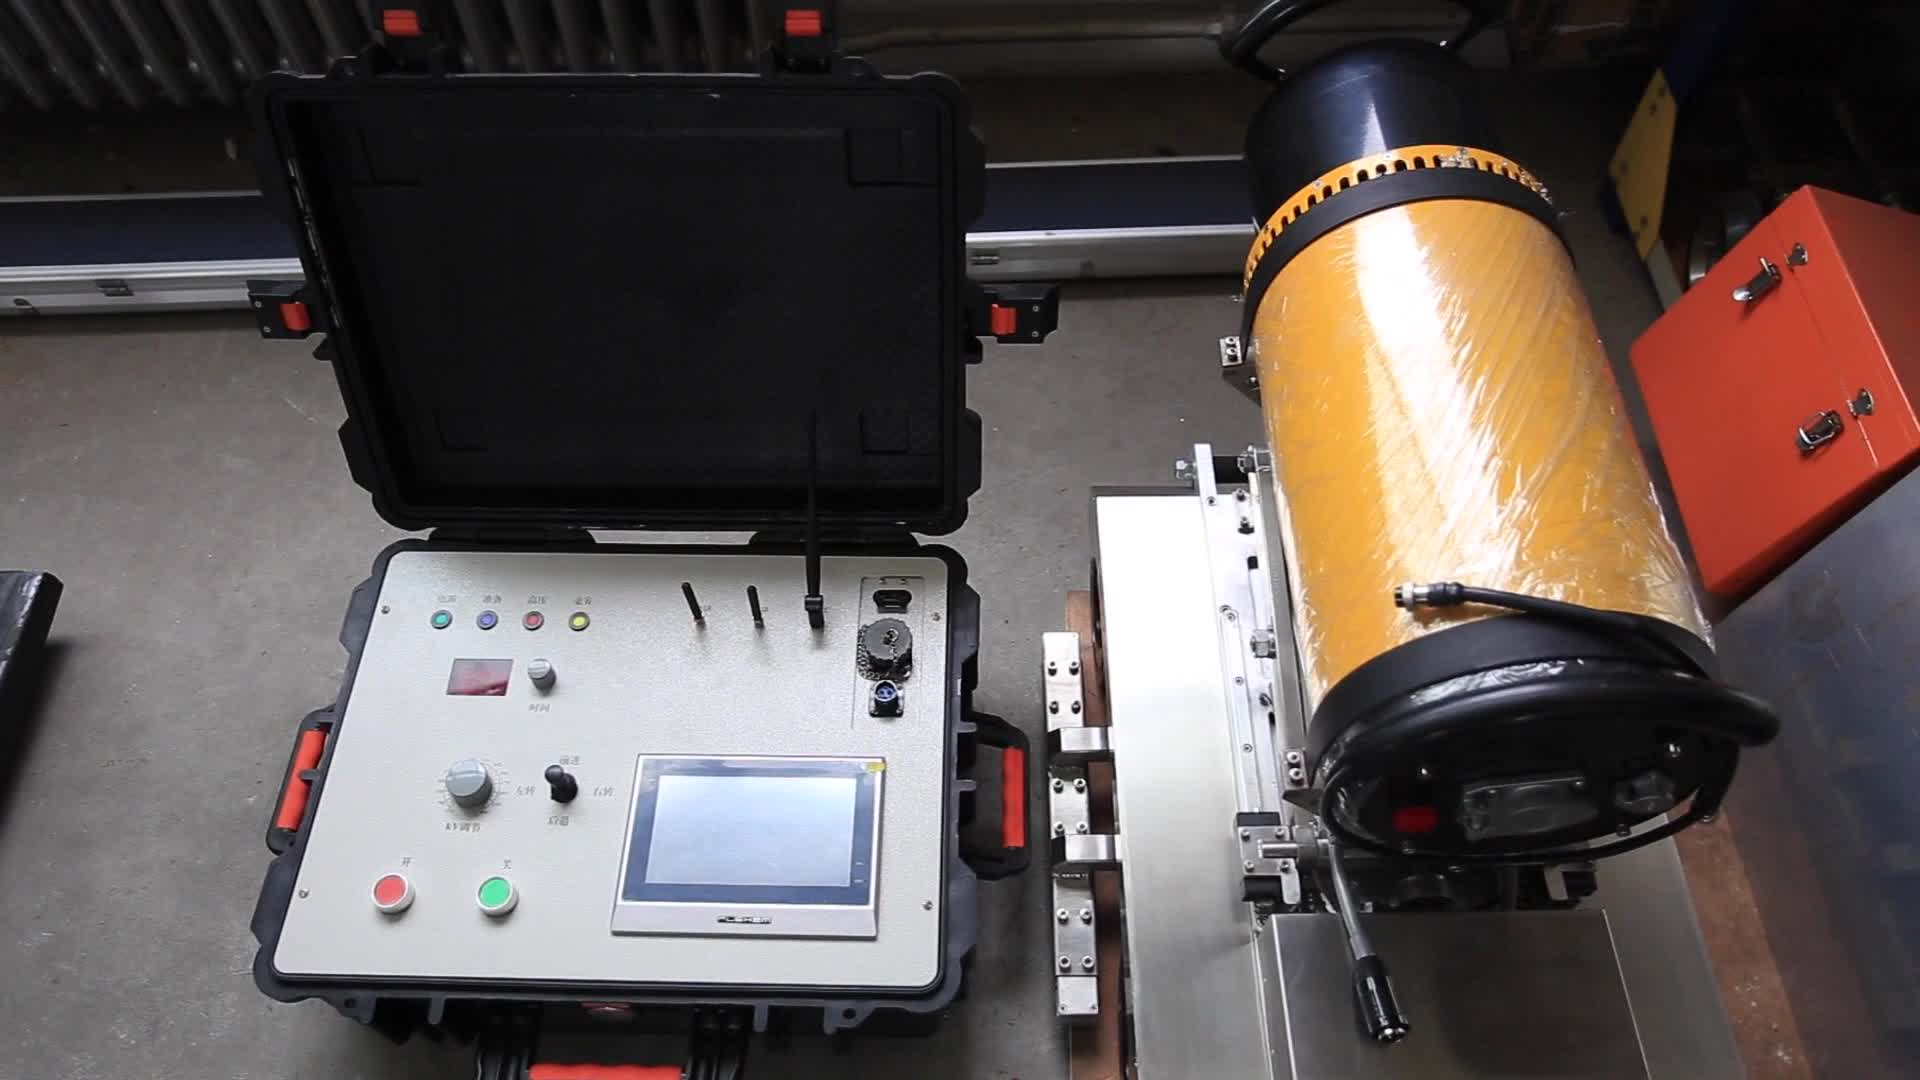 X-ray manufacturer portable industrial ndt weld X Ray testing equipment XXG-2005